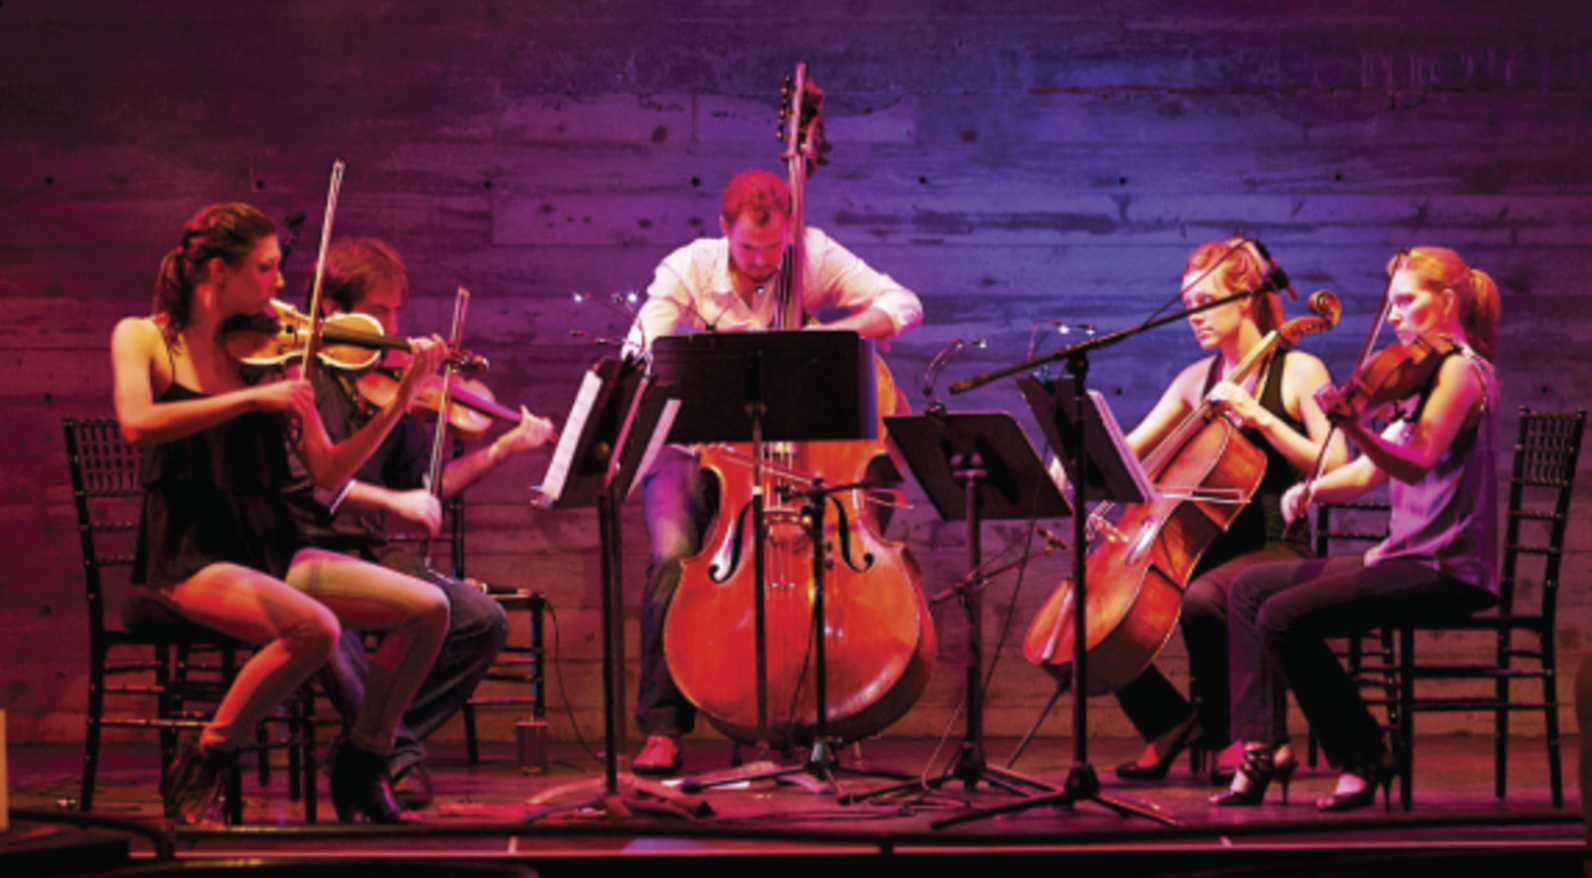 """Sybarite5 @the cell: w/ special guests Blythe Gaissert, Djordje Nesic, & Sean Ritenauer    SYBARITE5 RETURNS HOME TO NYC FOR TWO CONCERTS @THE CELL   w/NYC PREMIERES AND NEW COLLABORATIONS    November 6 & 7, 2014, 8:00pm   @the cell, 338 w 23rd St, NYC (btwn 8th & 9th)    Acclaimed string quintet Sybarite5 continues their 2014 residency with groundbreaking collaborations at the cell in Chelsea, NYC. The concerts include reimagined works by Frederic Rzewski and Emmy-award winner Glen Roven. Three distinguished guest artists will join Sybarite5: mezzo-soprano Blythe Gaissert from the Metropolitan Opera, pianist Djordje Nesic, and percussionist Sean Ritenauer, who frequently performs with the New York Philharmonic.    Rzewski's intense work, Coming Together combines an instrumental score with chilling narration, the text of which comes from letters written by an inmate by Attica prison inmate Sam Melville who was one of the leaders of the 1971 Attica riots. Roven's sweeping new work Goodnight Moon derives its text from the popular children's book of the same name. In addition to these collaborative performances, Sybarite5 will perform works from its eclectic repertoire, including Radiohead, Piazzolla and recent commissions from Andy Akiho and Shawn Conley.    """"Their rock star status is well deserved. Their classically honed technique mixed with grit and all out passionate attack transfixes the audience...""""   That is how the Sarasota Herald Tribune described Sybarite5, the first string quintet ever selected as a winner of the Concert Artists Guild International Competition and Sylvia Ann Hewlett Adventurous Artist Prize. Comprised of Sami Merdinian and Sarah Whitney, violins; Angela Pickett, viola; Laura Metcalf, cello; and Louis Levitt, bass, Sybarite5 has taken audiences by storm all across the US, forever changing the perception of chamber music performance. From the moment their bows hit the strings, this quintet of talented, diverse musicians takes the audience on """